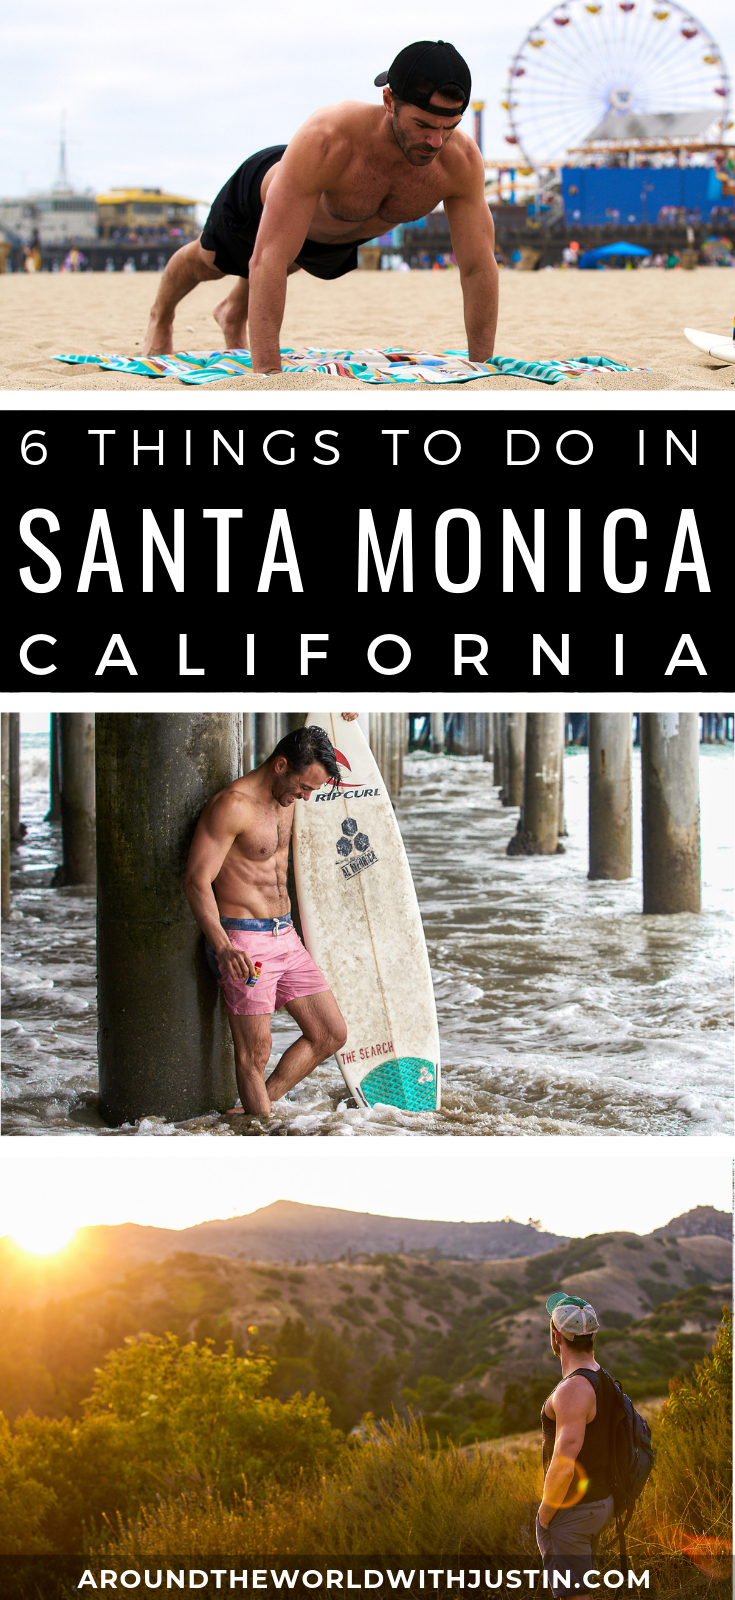 6 Things to do in Santa Monica